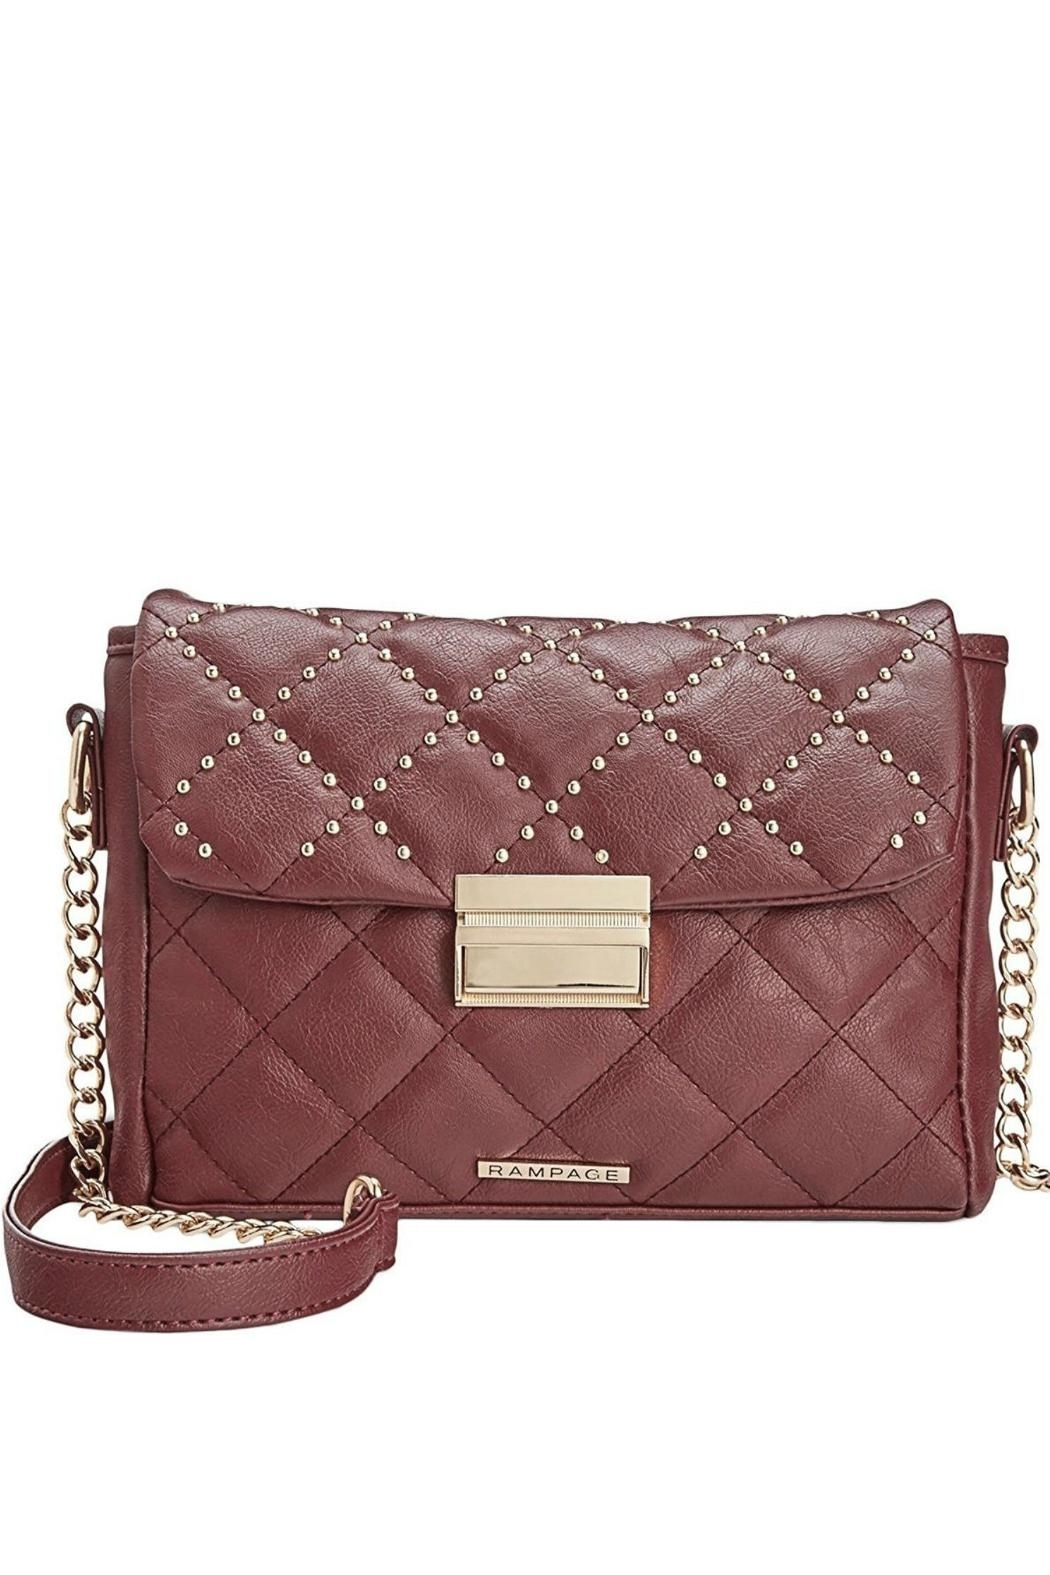 Rampage Quilted Studded Crossbody - Main Image